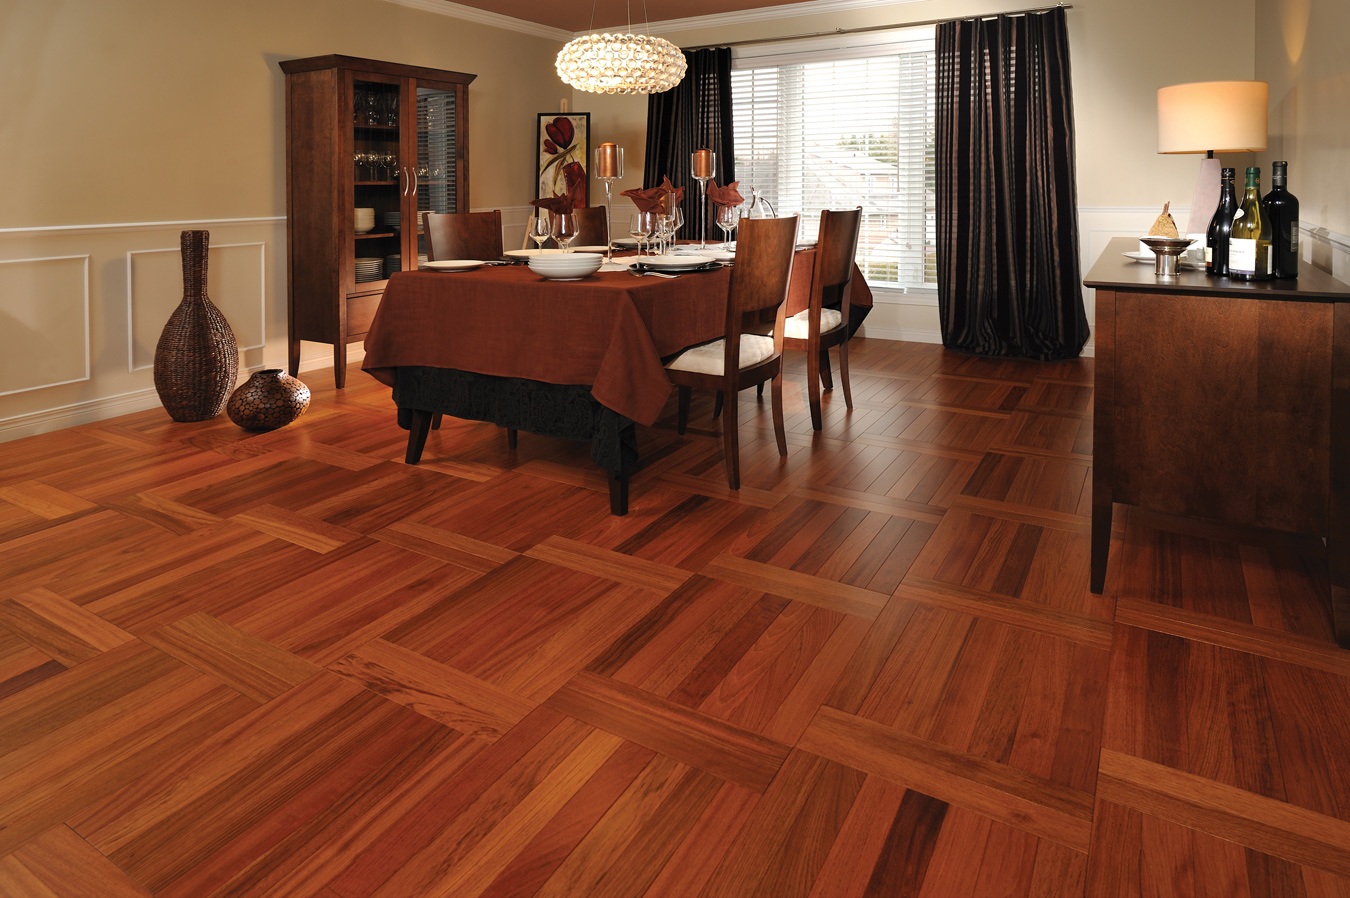 15 popular ideas and designs for hardwood floors qnud Room floor design